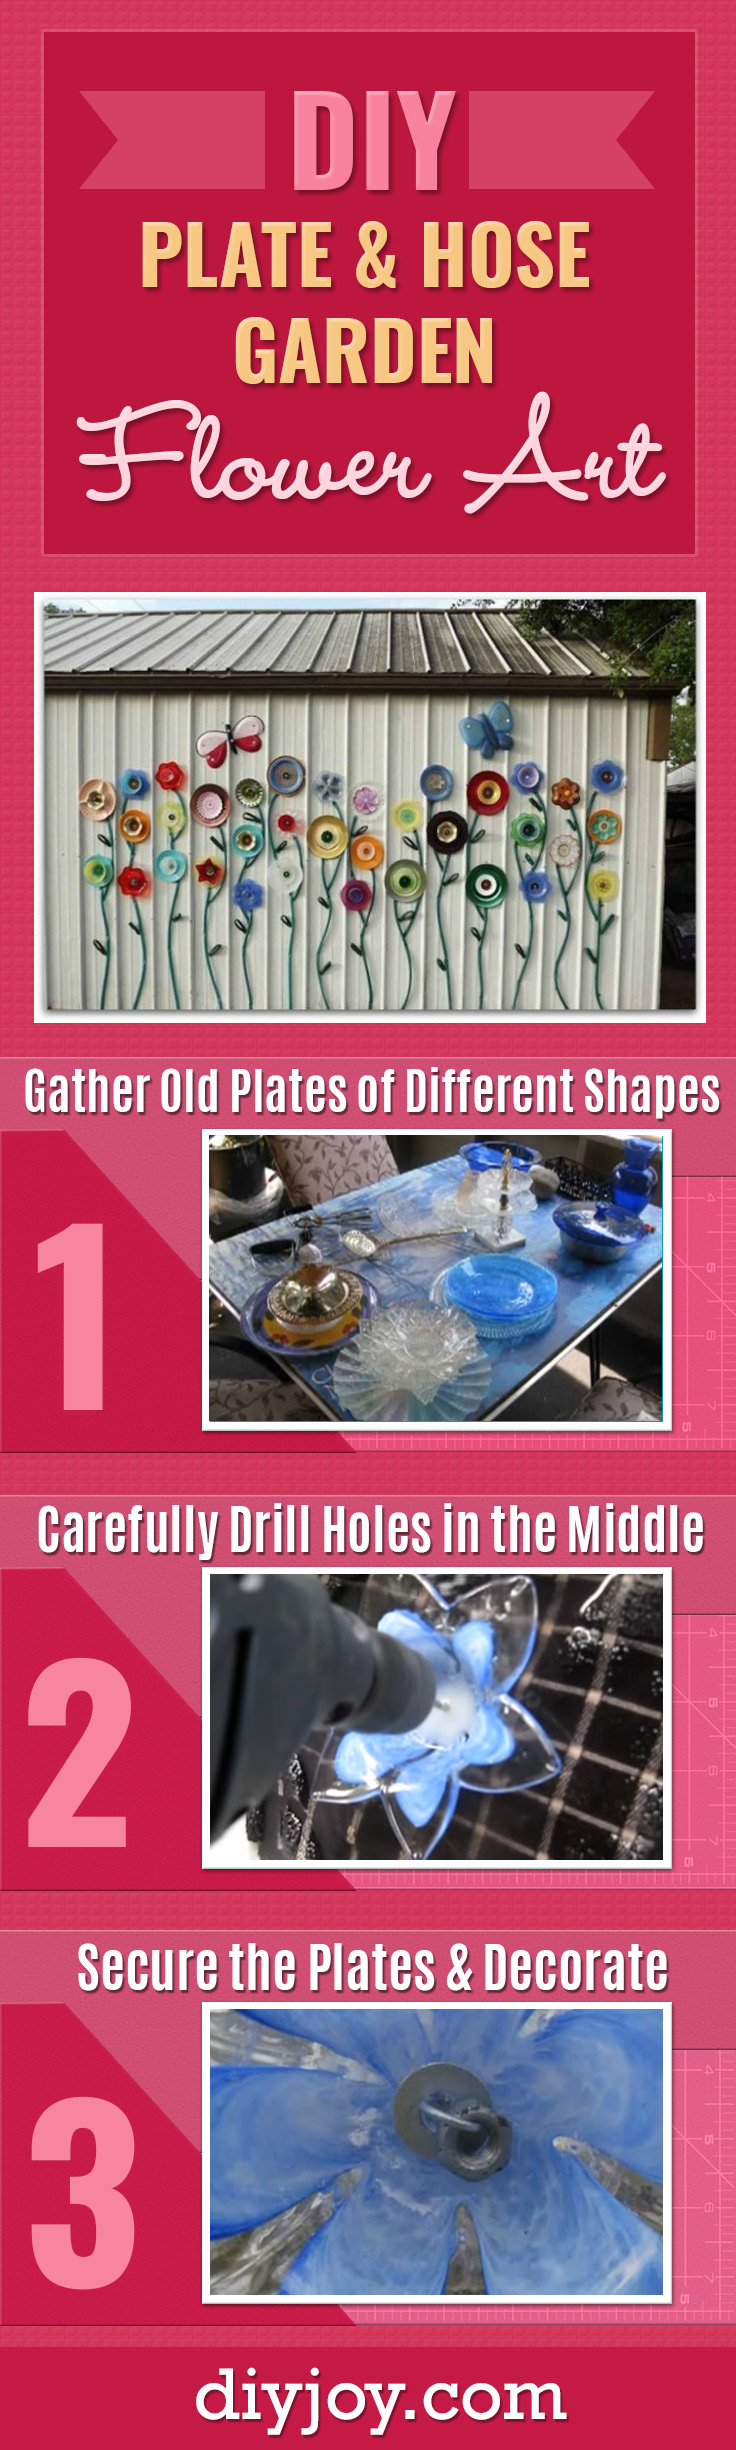 DIY Ideas for the Backyard - Outdoors DIY Plate and Hose Garden Art With Flowers - Cheap Home Decor on A Budget for Your Yard